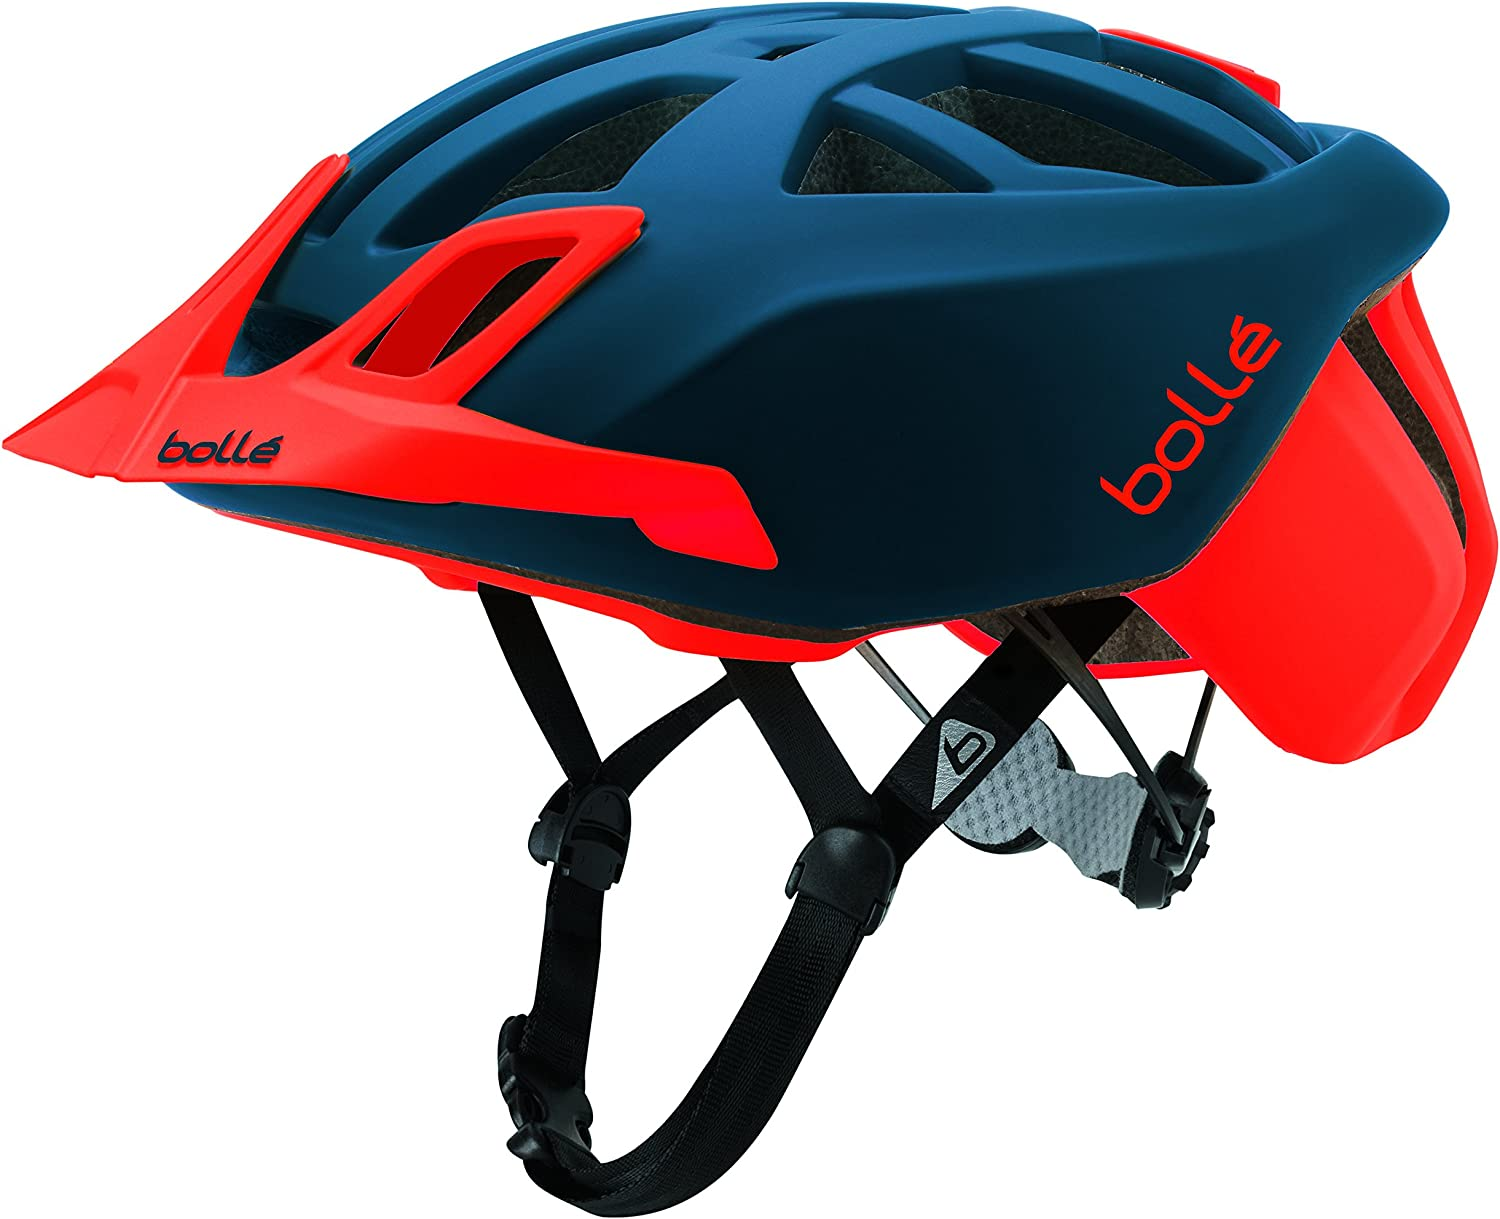 51-54 cm Bolle Unisexs The One Mtb Cycling Helmet Navy Red